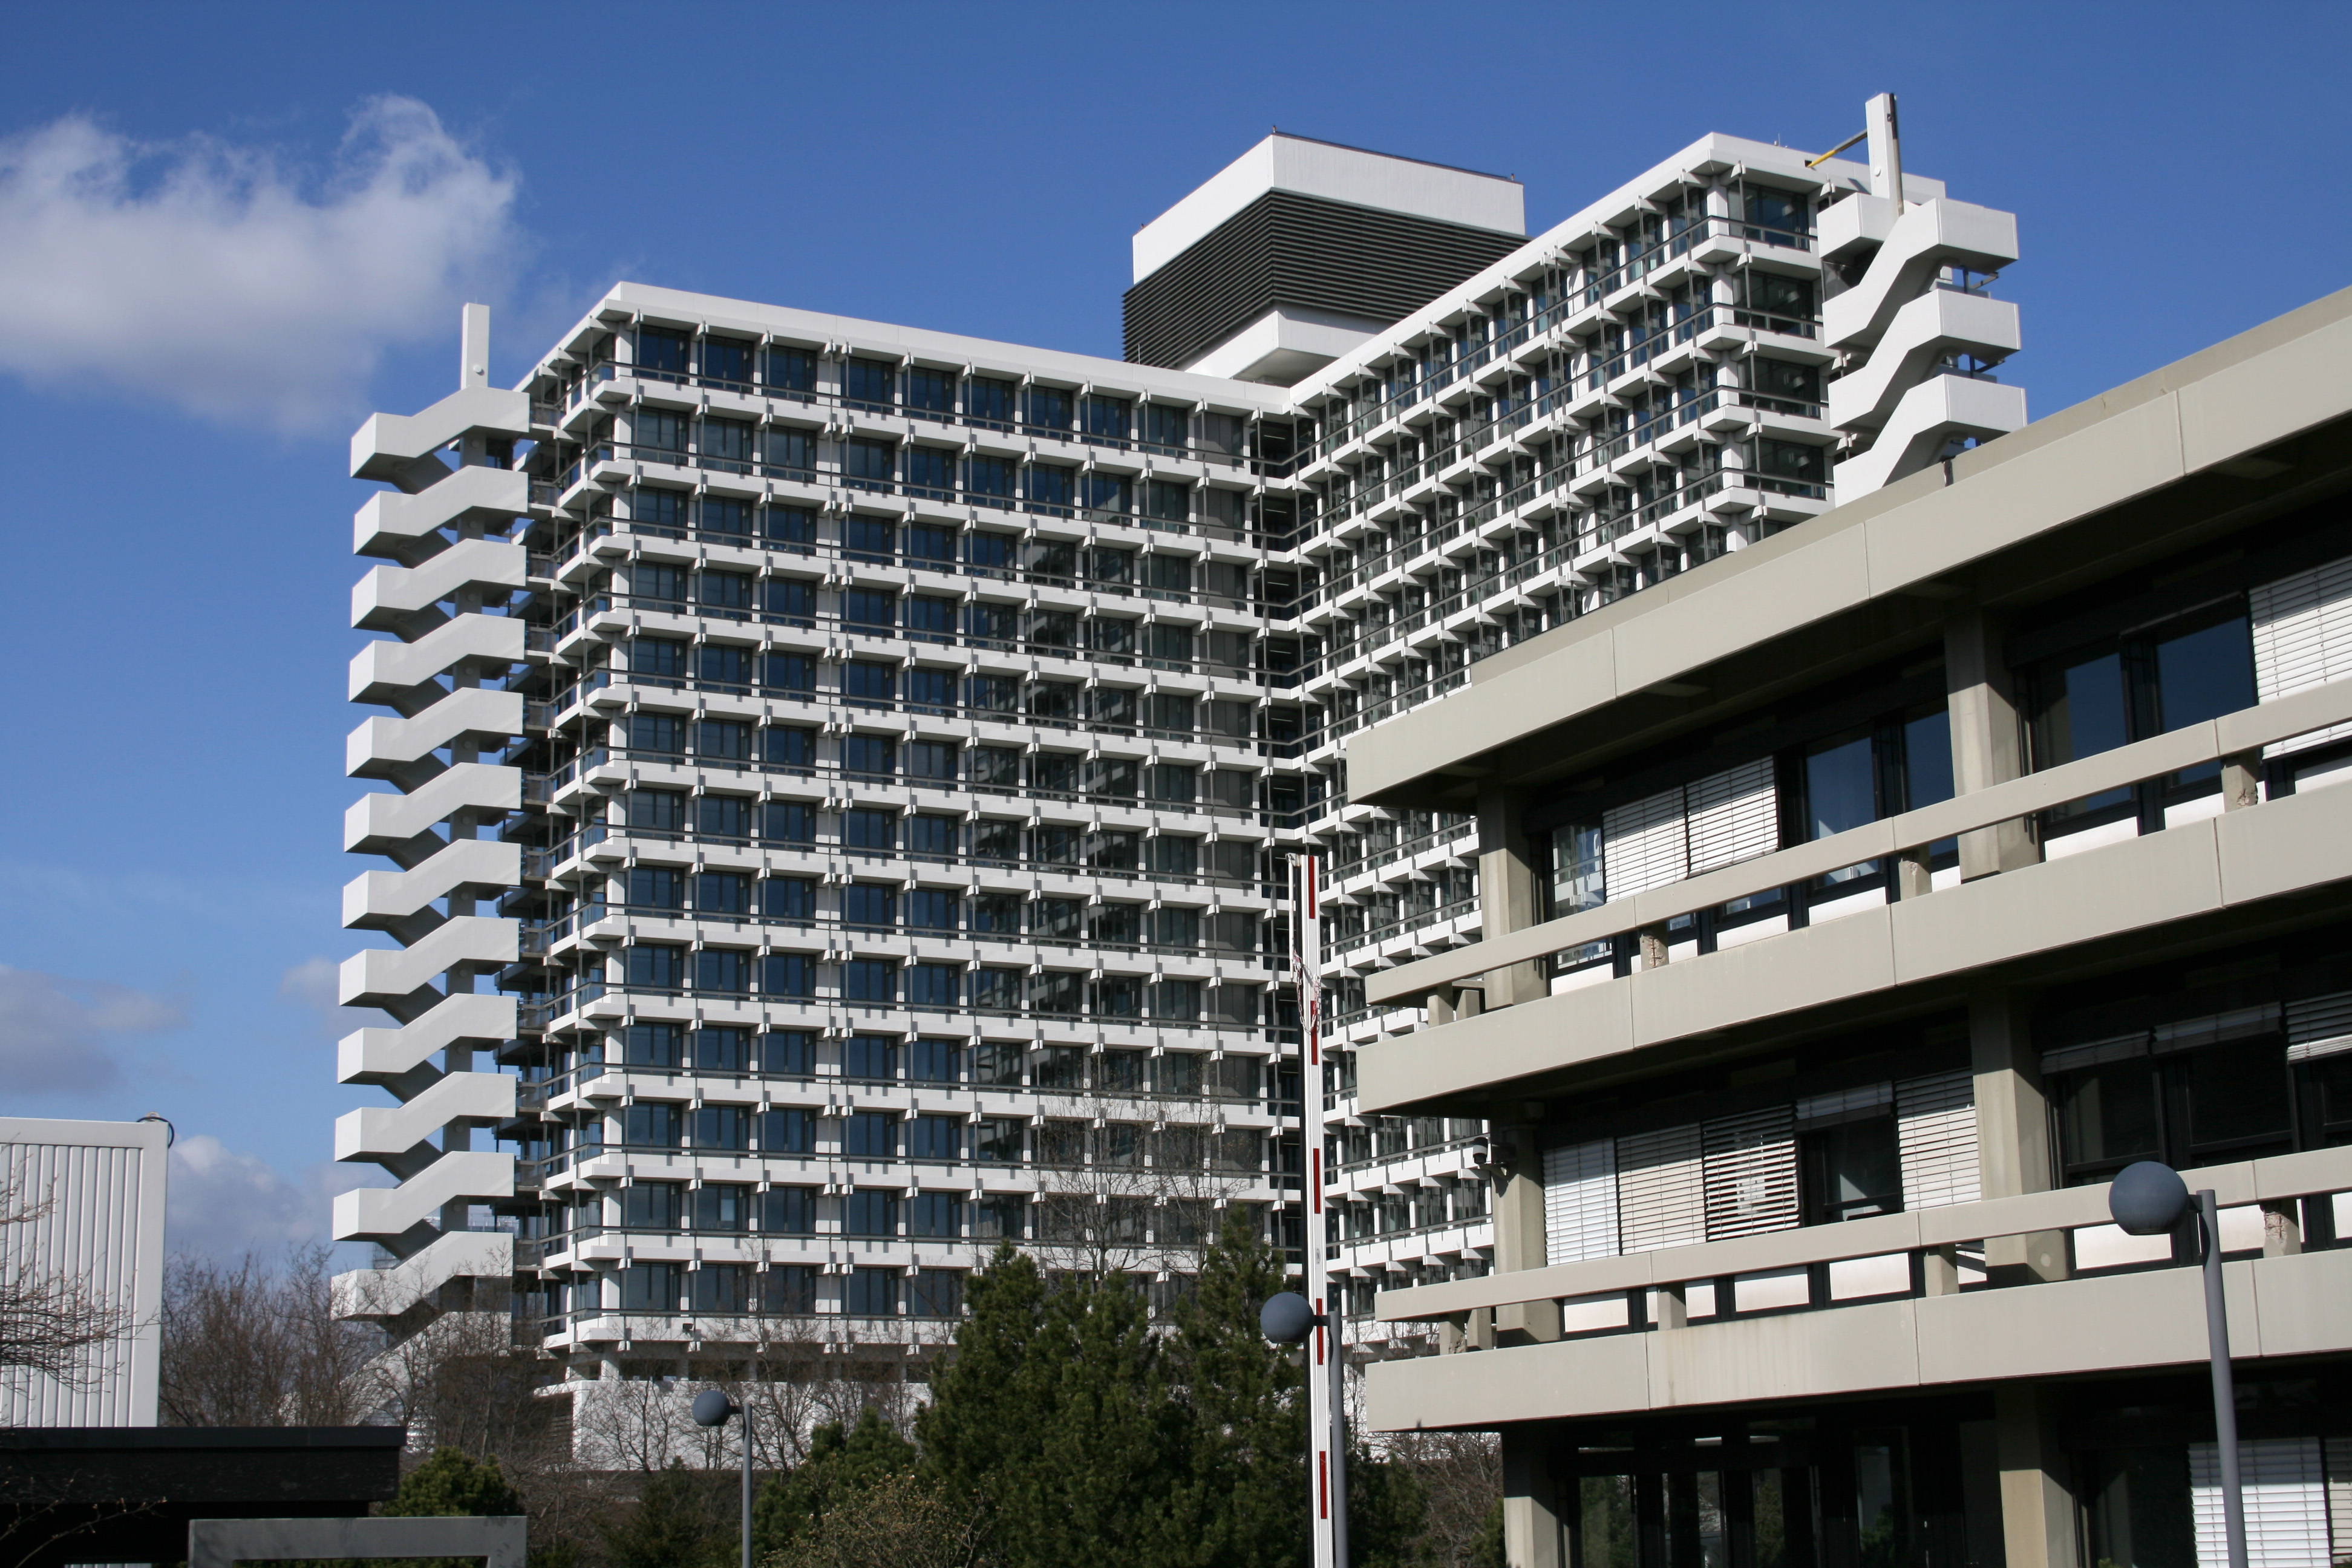 Ministry of Education and Research headquarters building, Bonn